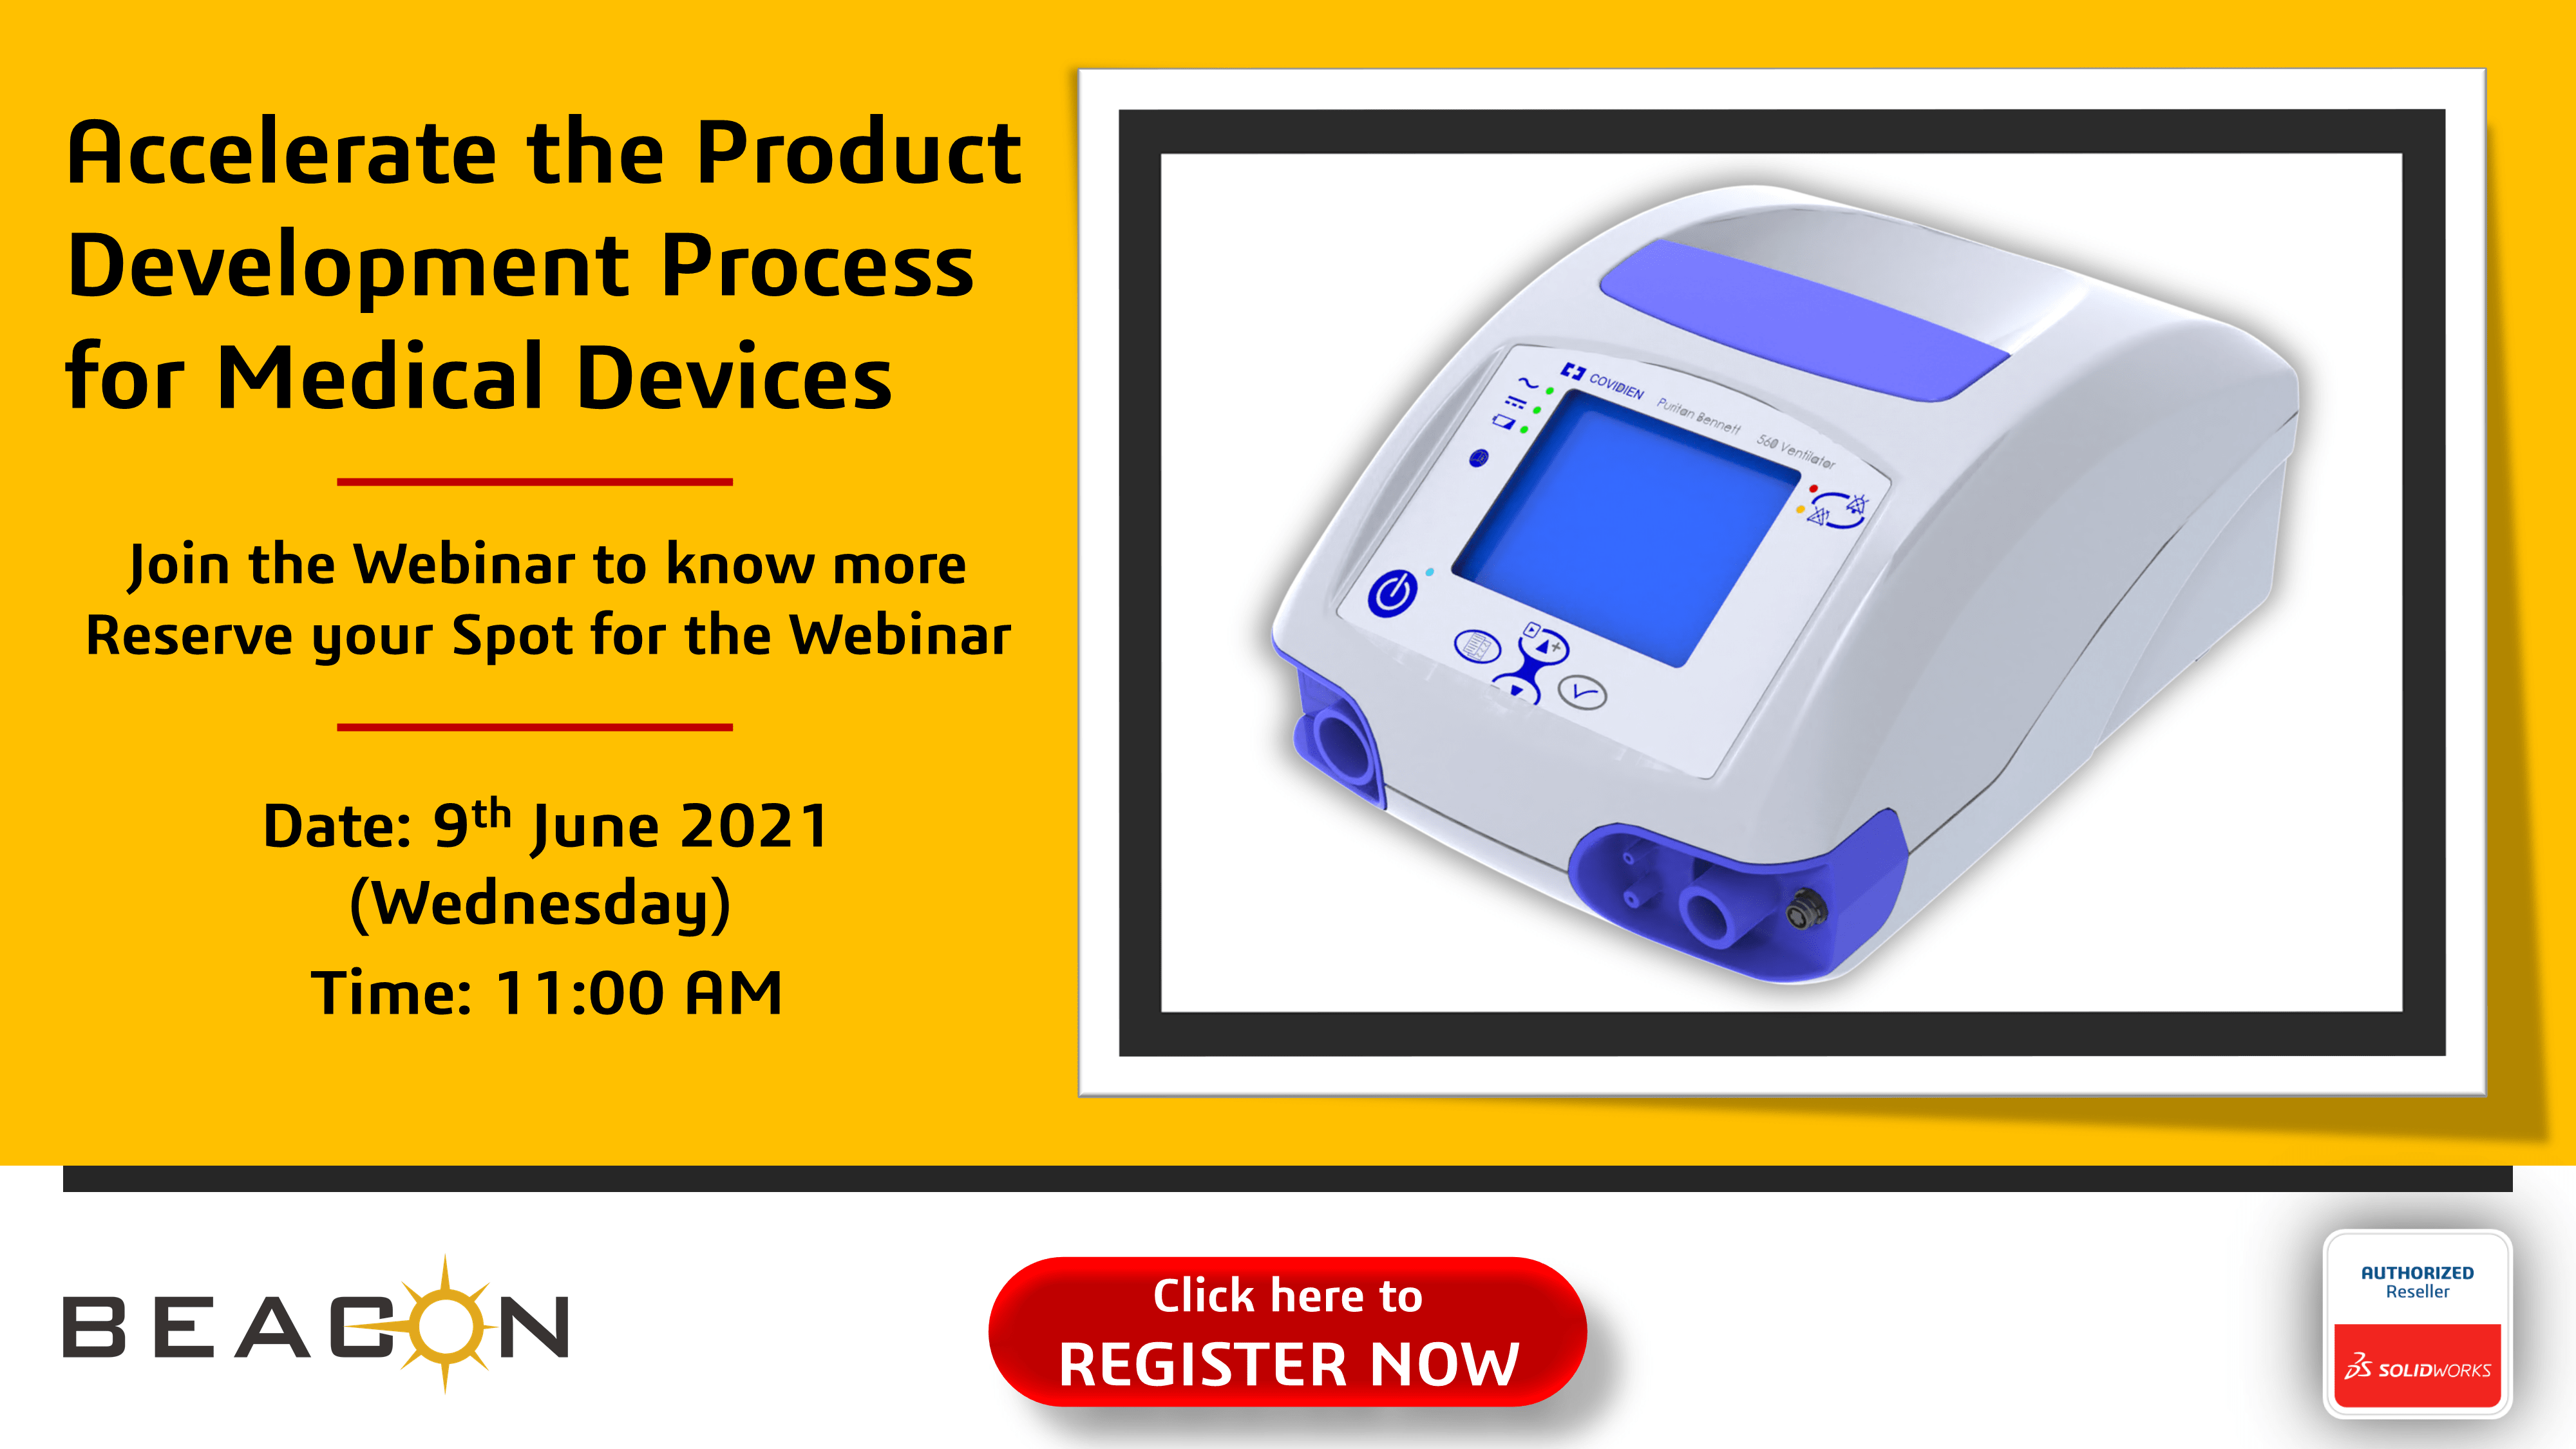 Accelerate the Product Development Process for Medical Devices